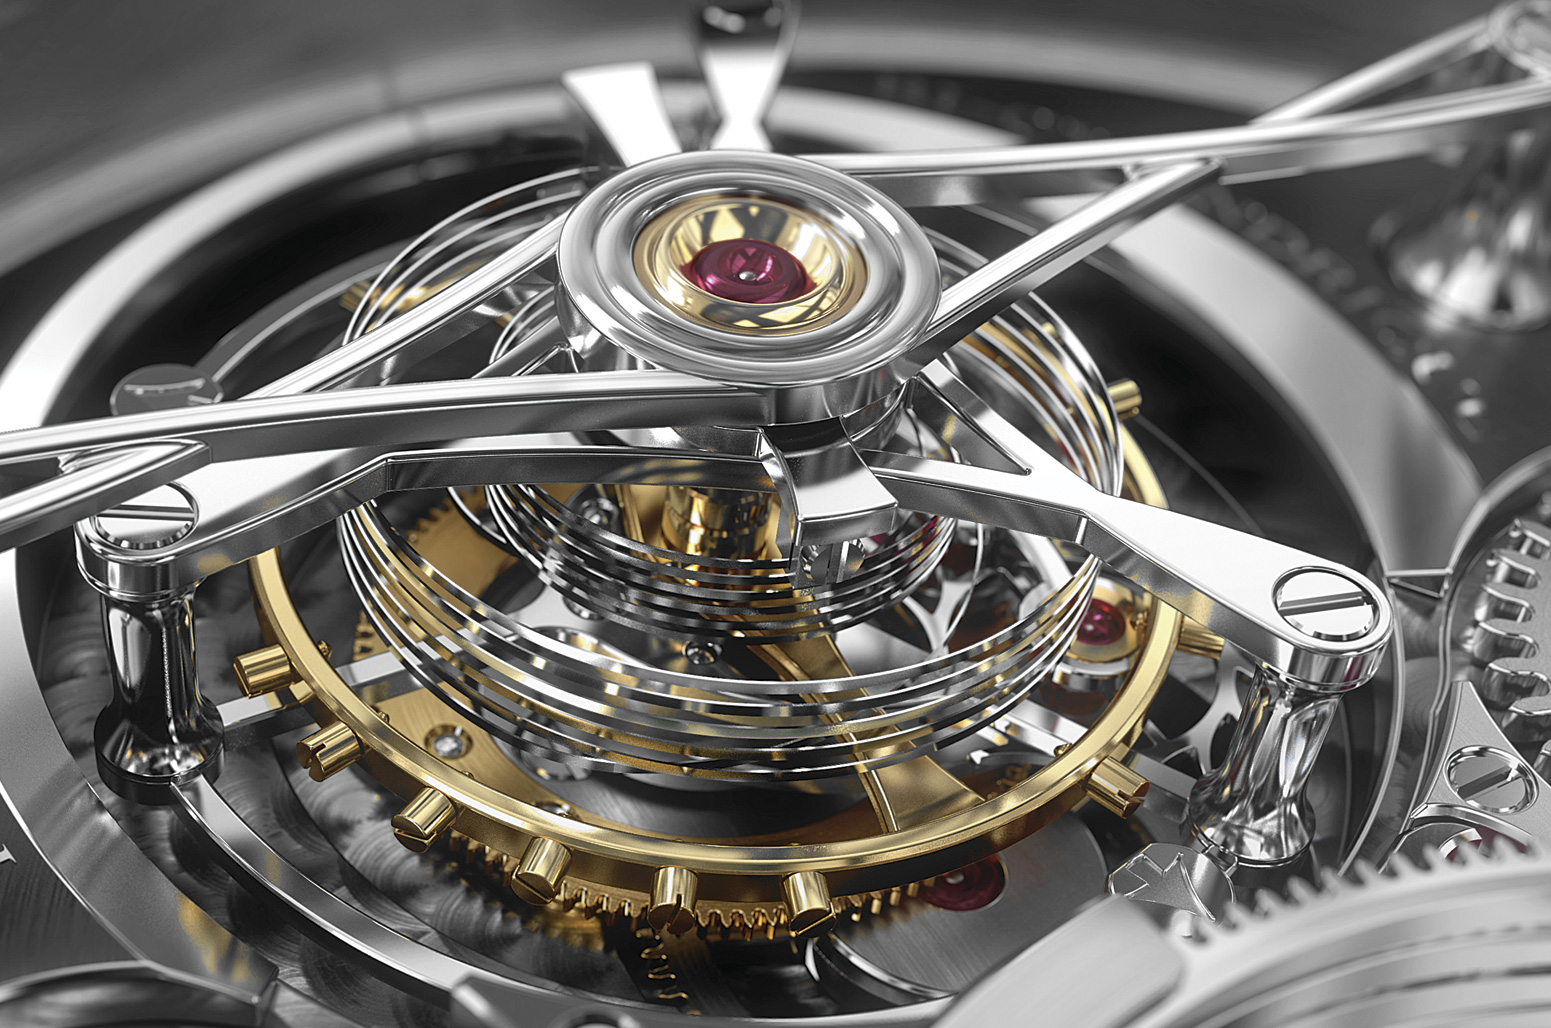 tourbillon-bi-cylindrique-orologio-swiss-made